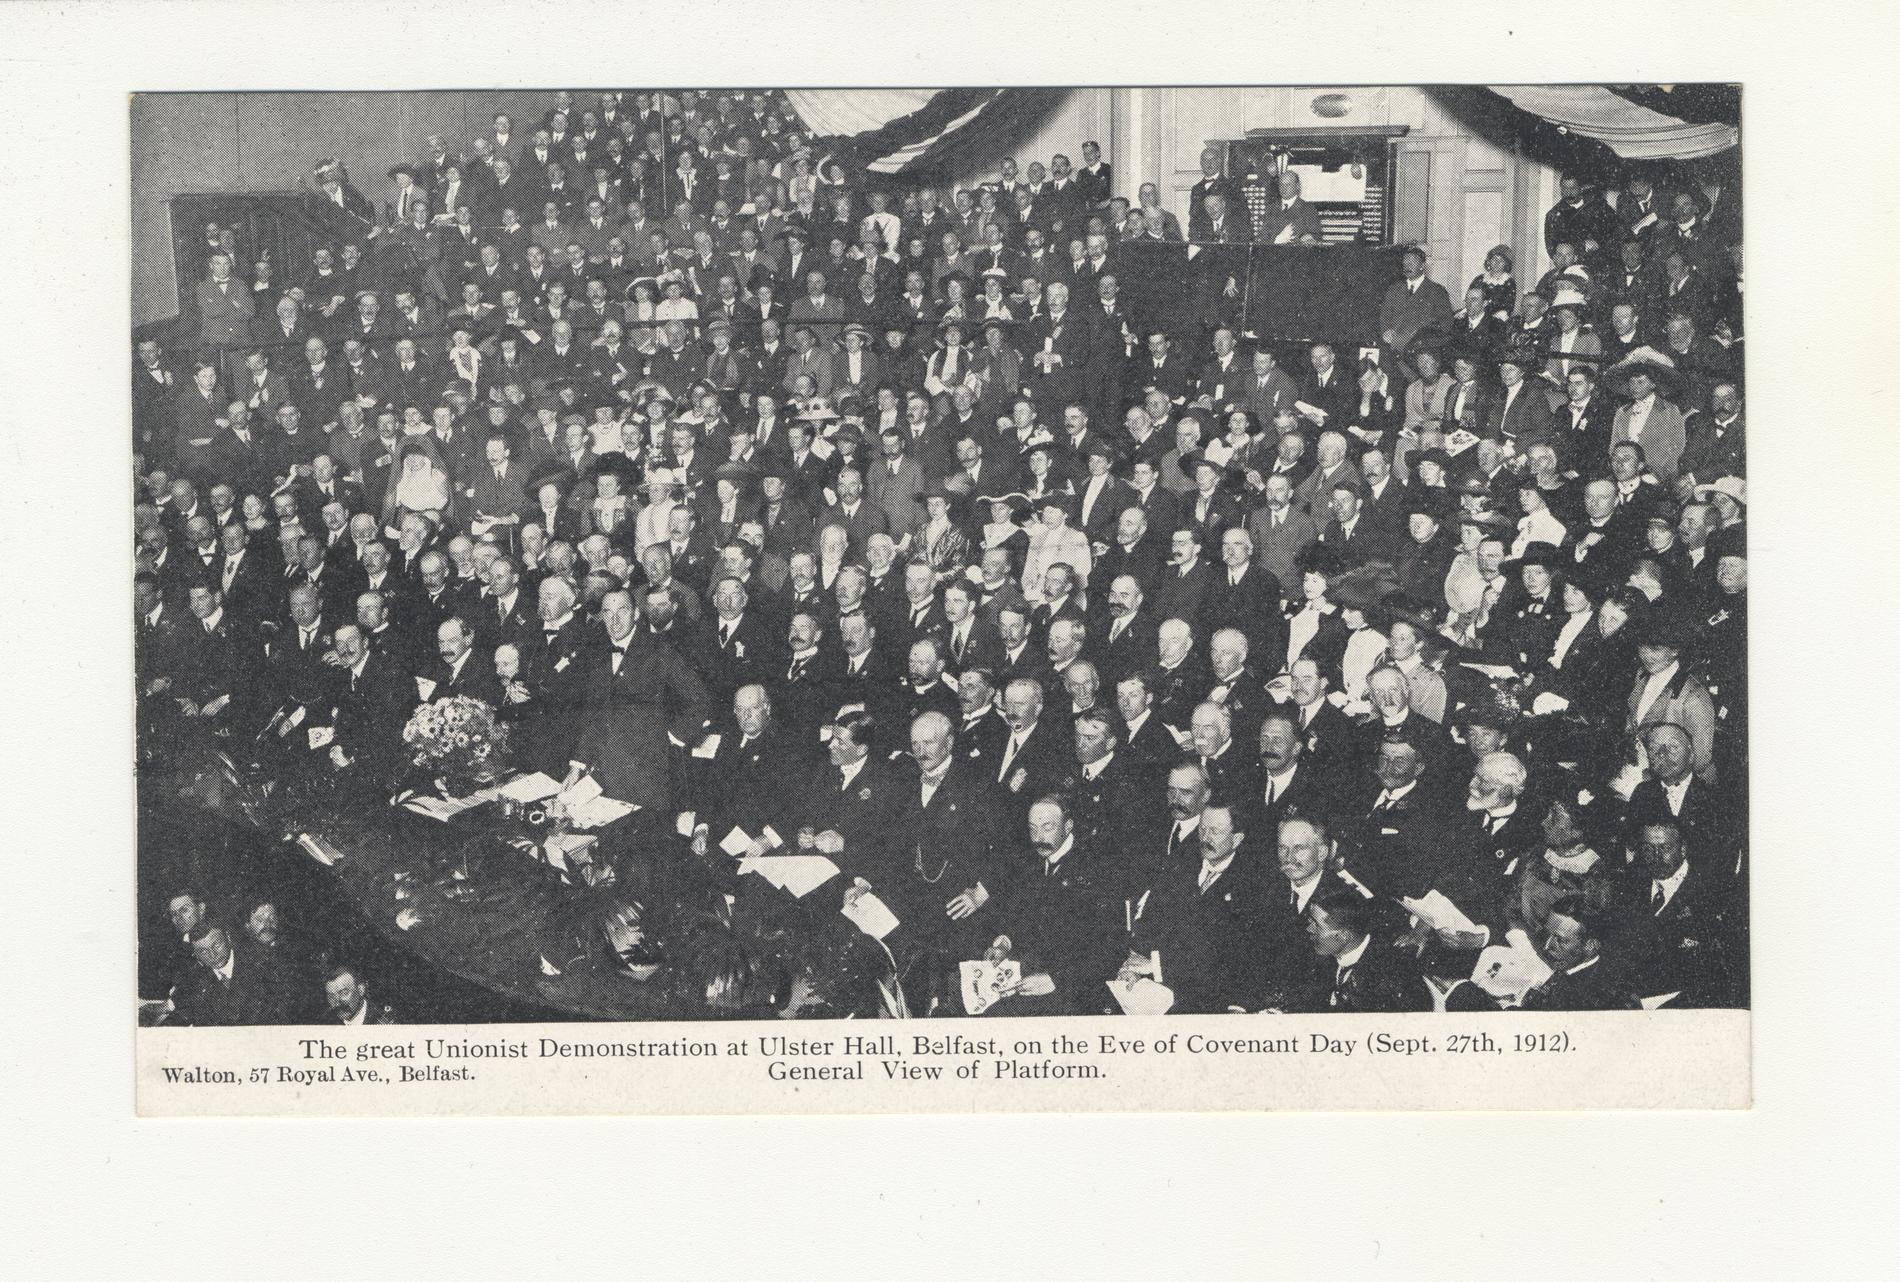 The Great Unionist Demonstration at Ulster Hall (Postcard)